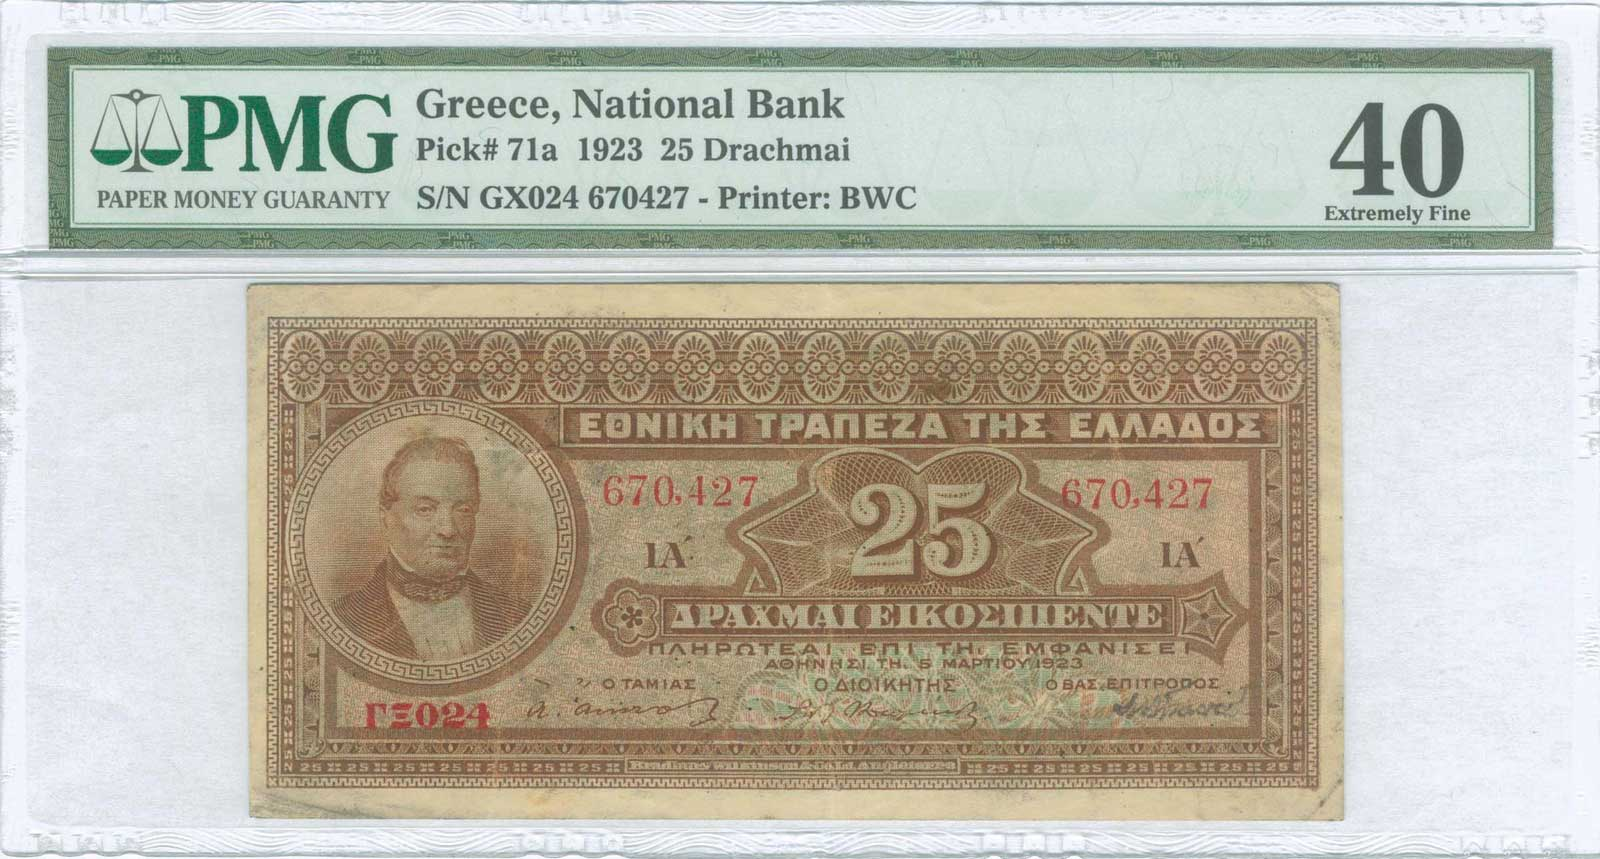 Lot 9299 - GREECE-  PAPER MONEY - BANKNOTES National Bank of Greece -  A. Karamitsos Public & LIVE Bid Auction 606 Coins, Medals & Banknotes